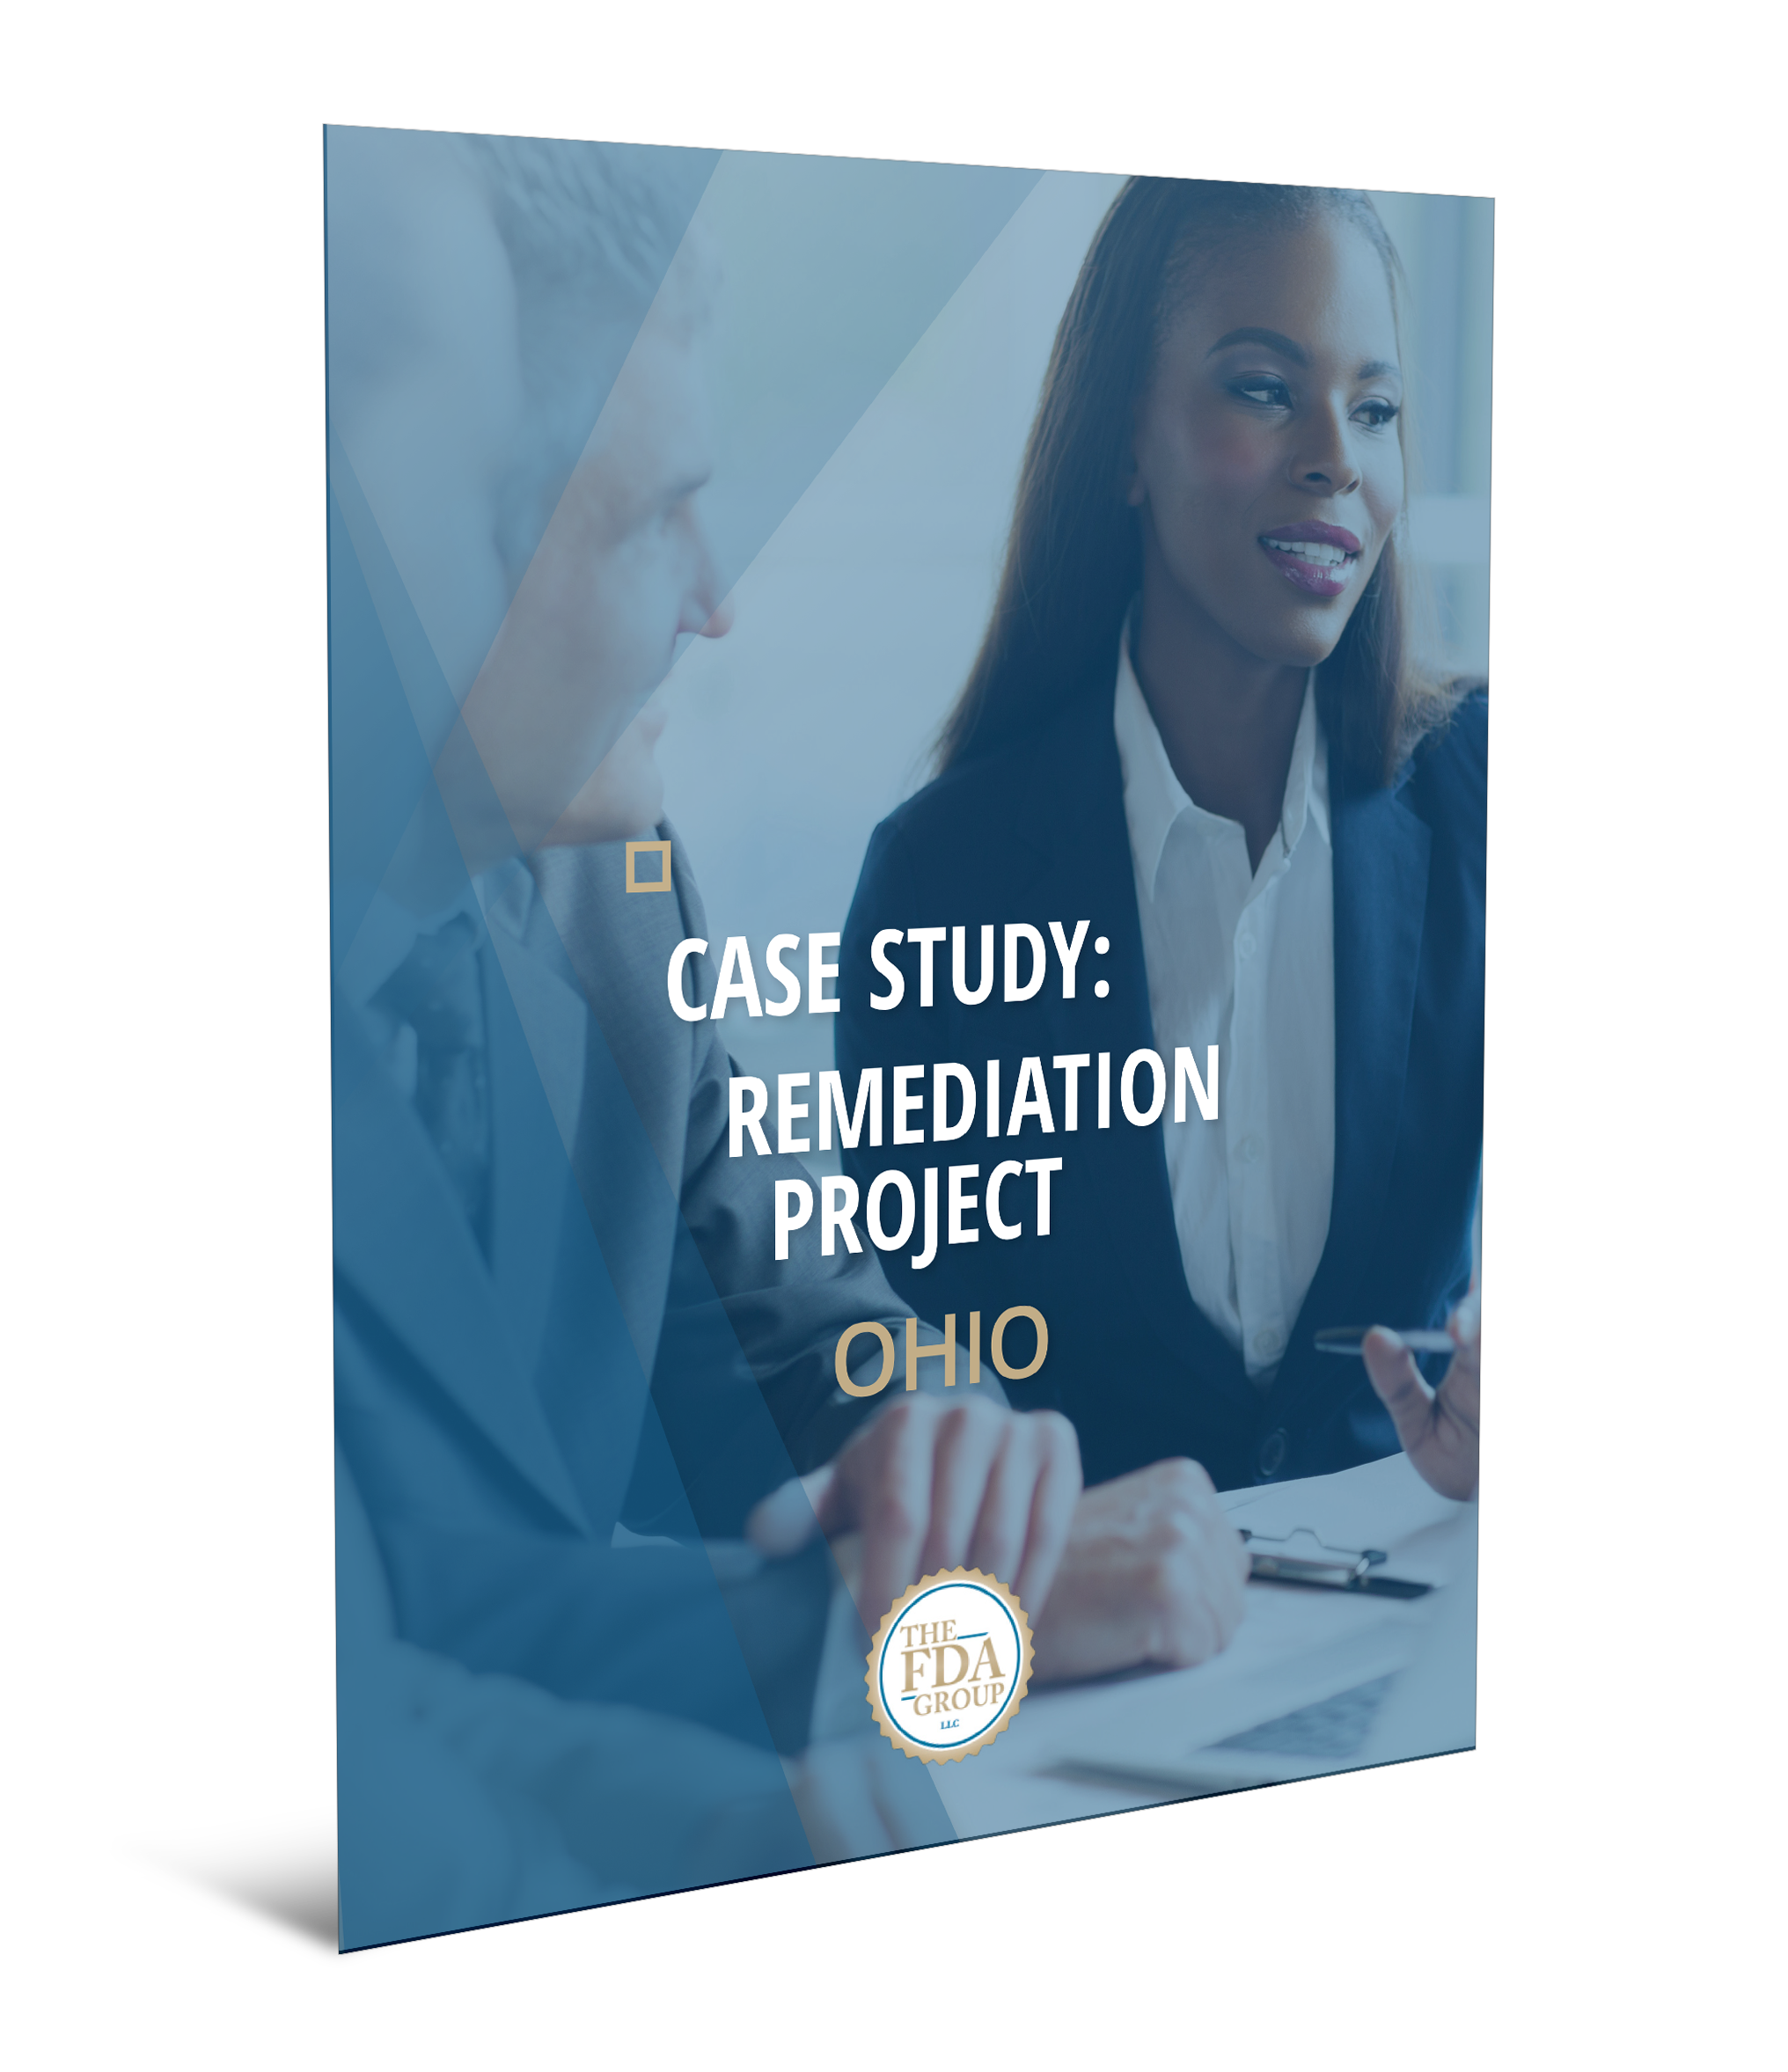 fda-casestudy-remediationproject2-cover.png